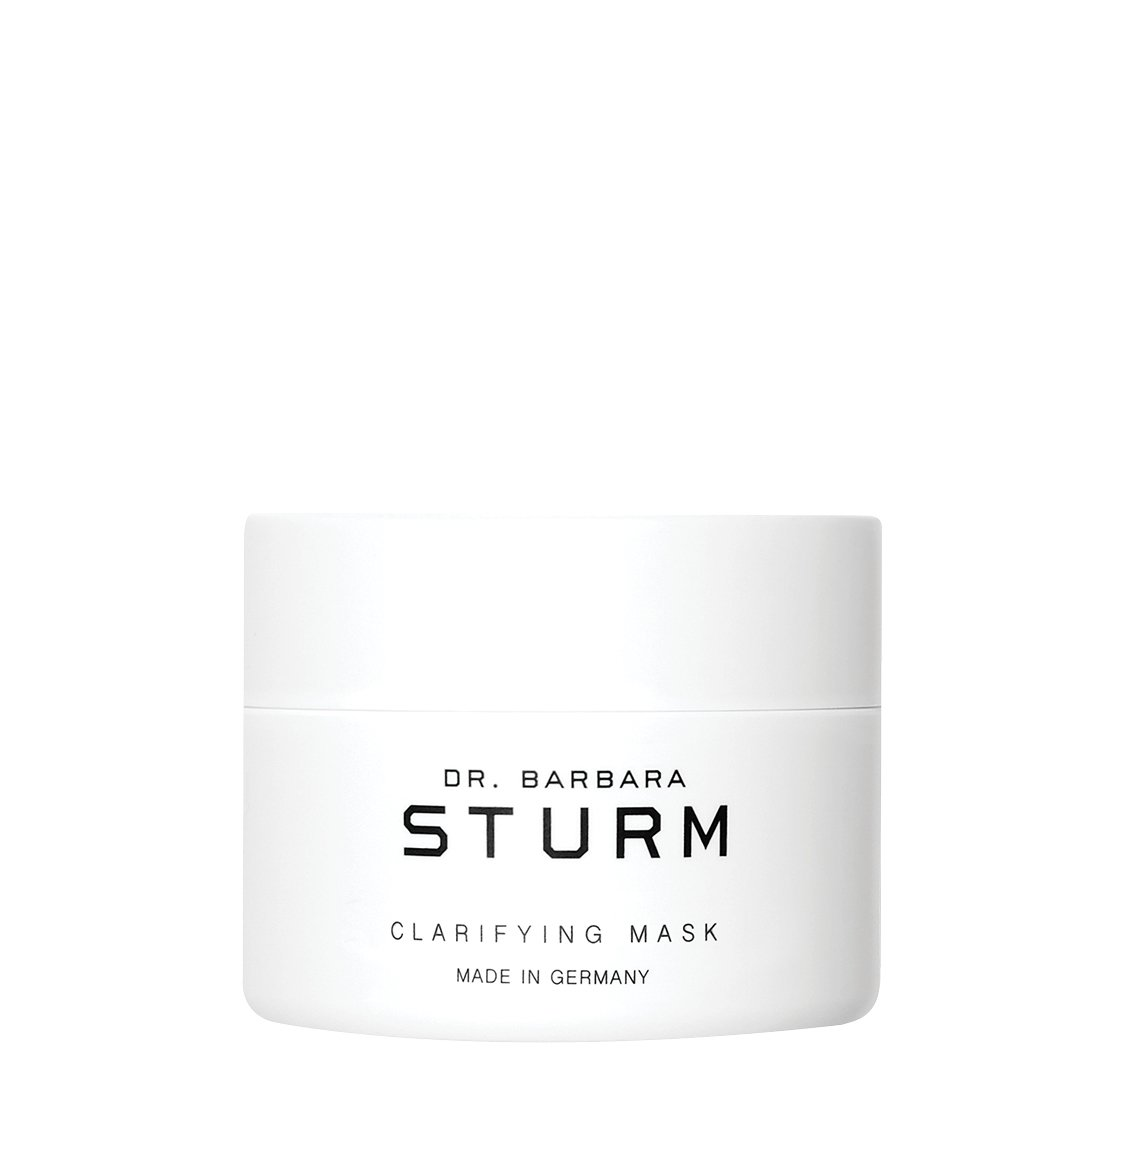 Dr. Barbara Sturm Clarifying Face Mask 50ml